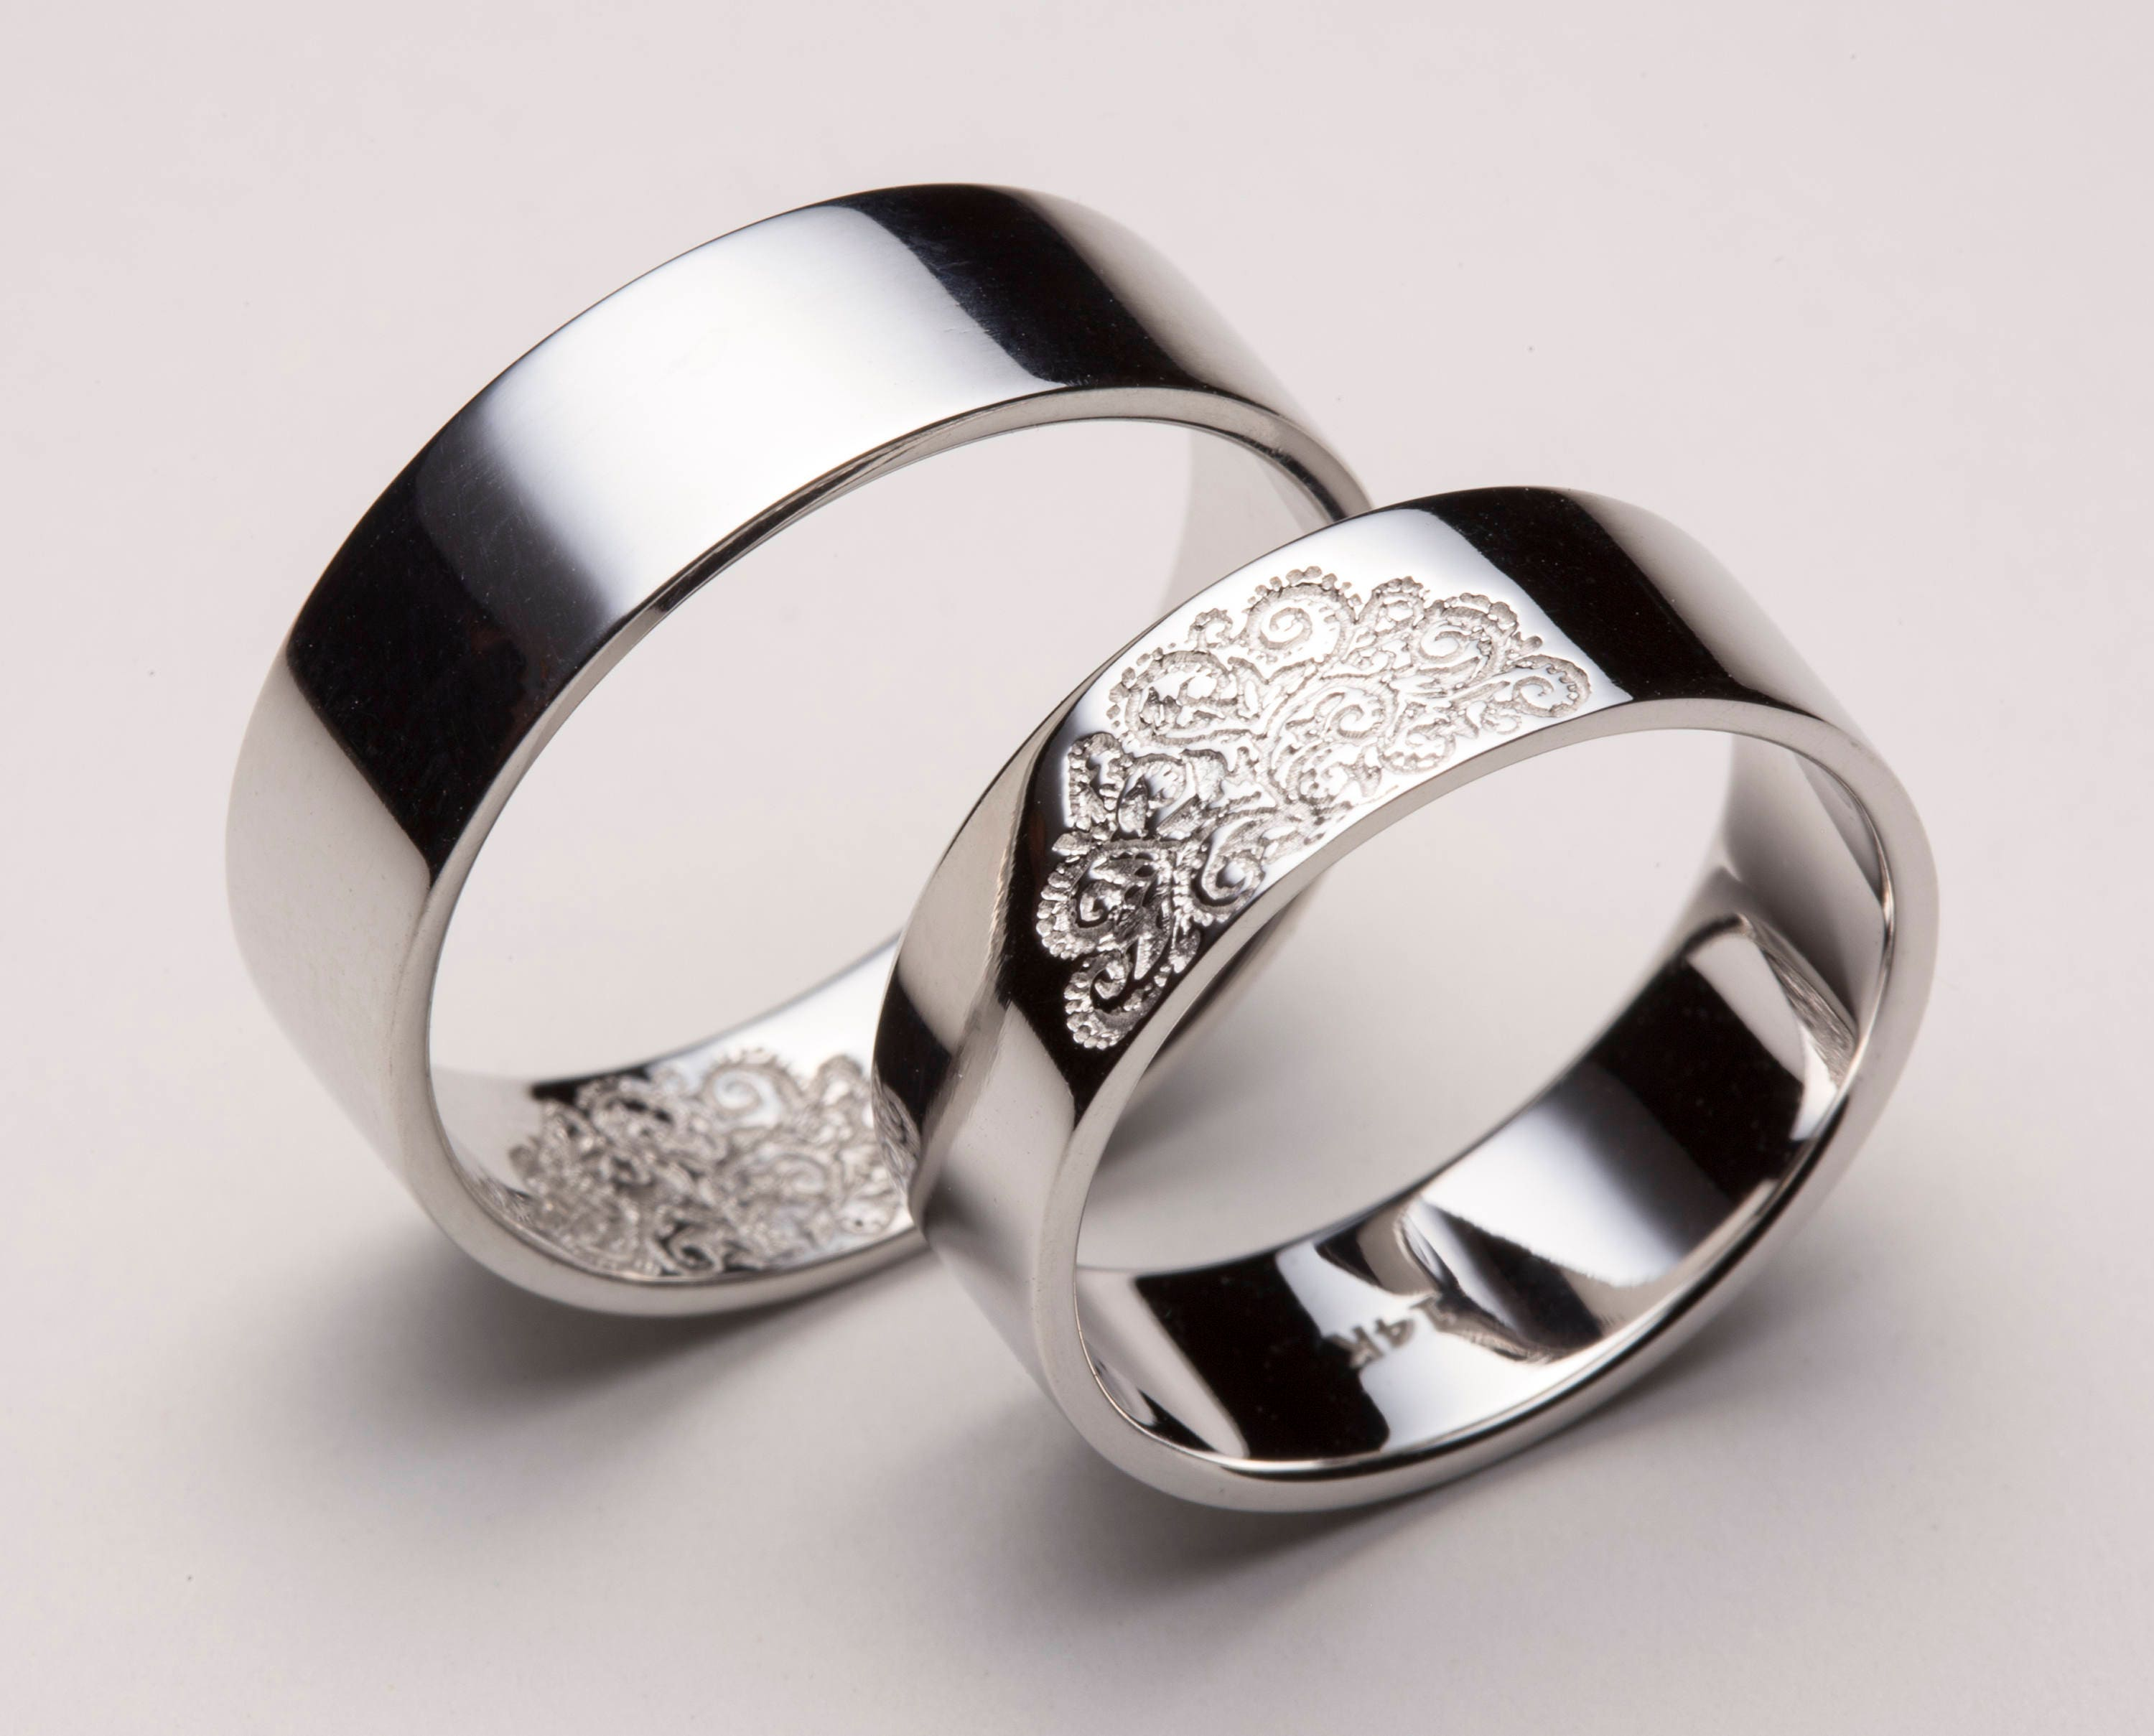 His And Hers Matching Wedding Bands Cheap.His And Hers Wedding Bands Matching Wedding Bands Matching Wedding Band Sets Wedding Ring Set His And His Ring Set Wedding Band Set